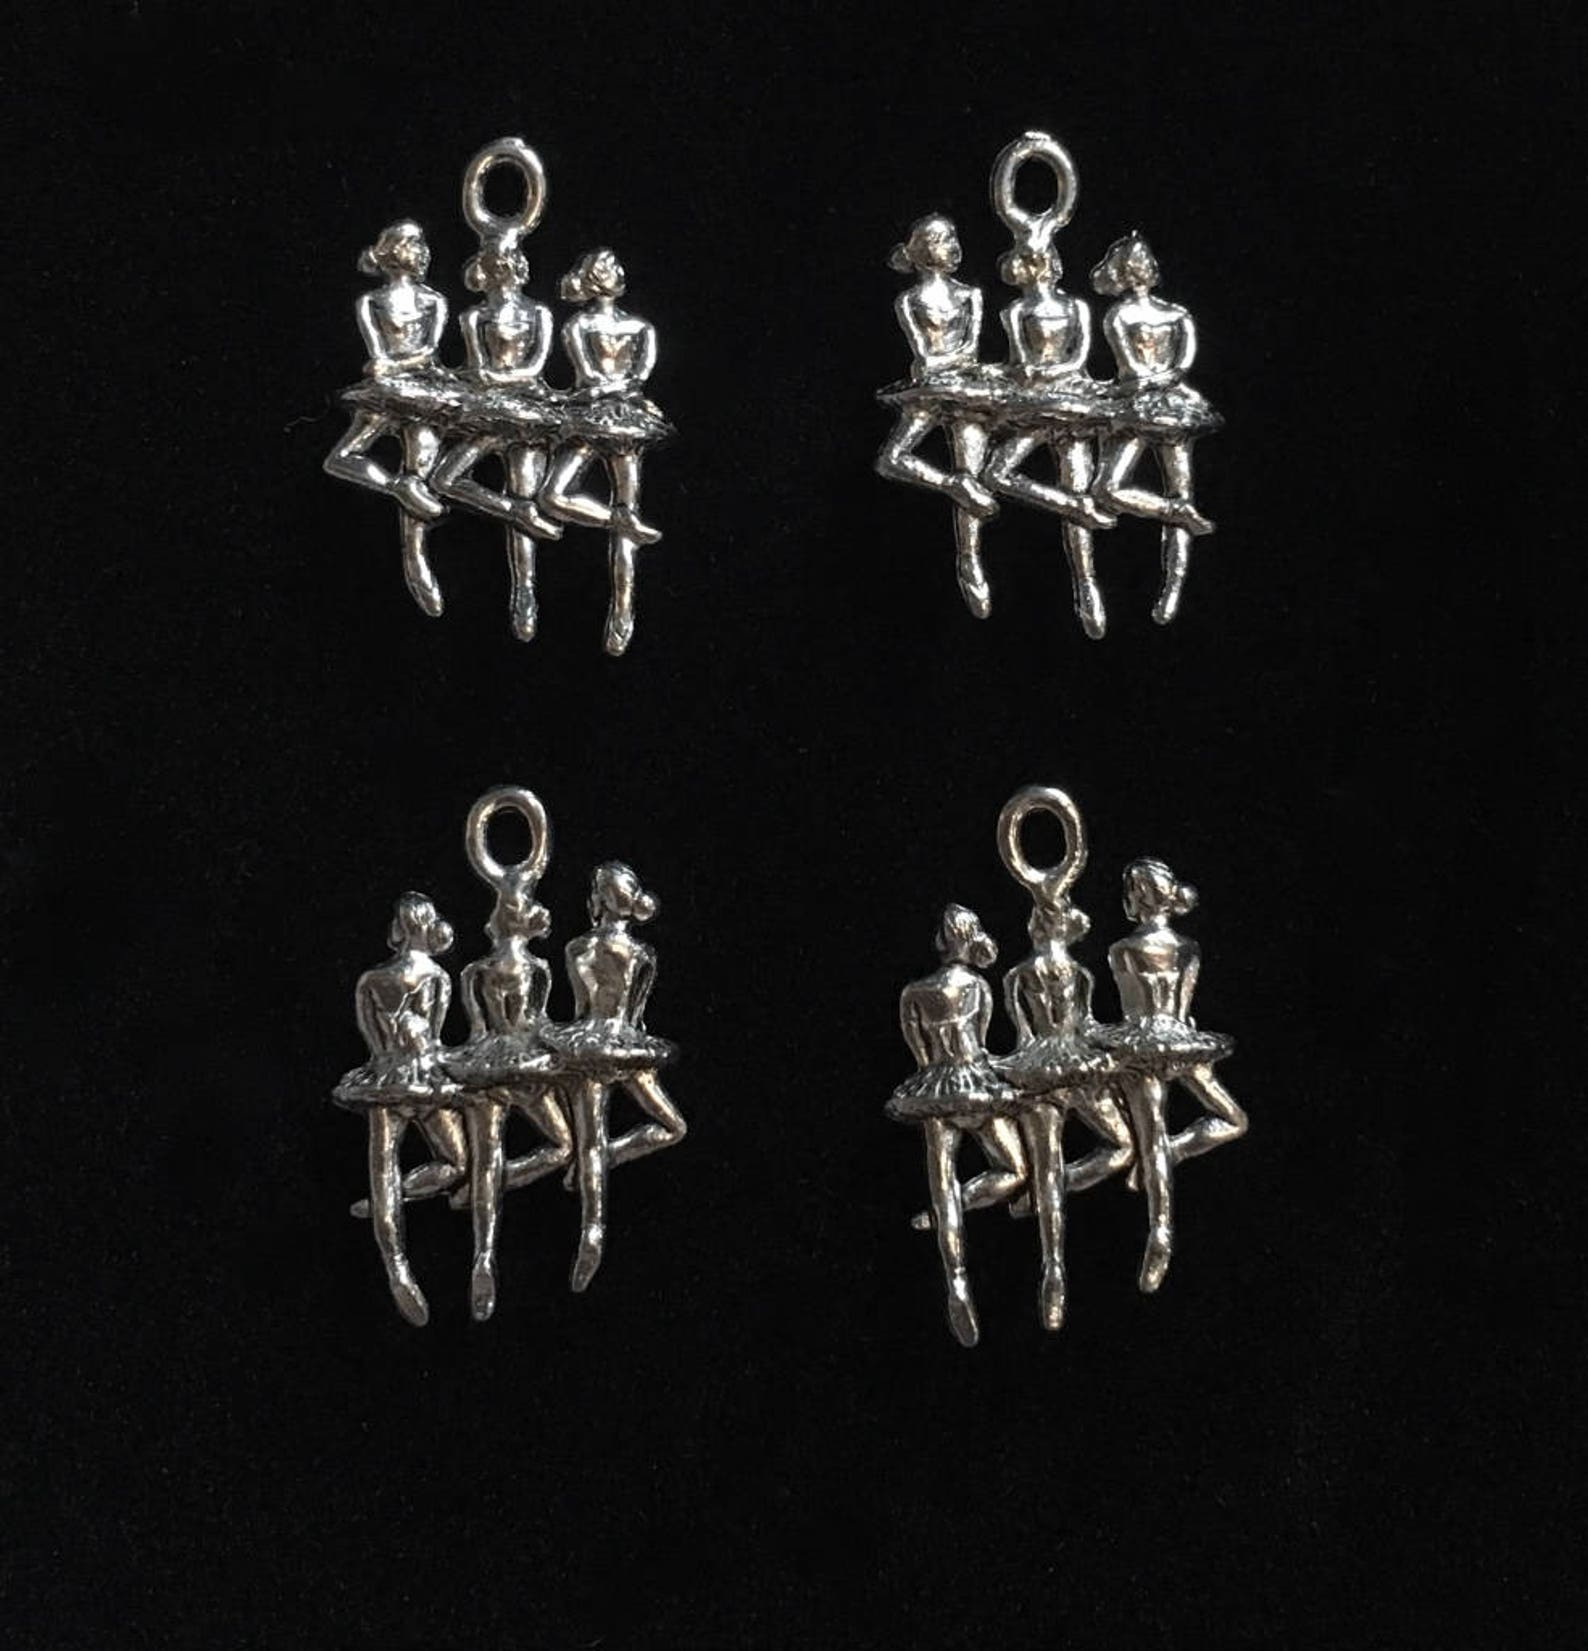 4 silver pewter ballerinas charms, trio of ballerina charms, ballet charms (qb103) - new charm